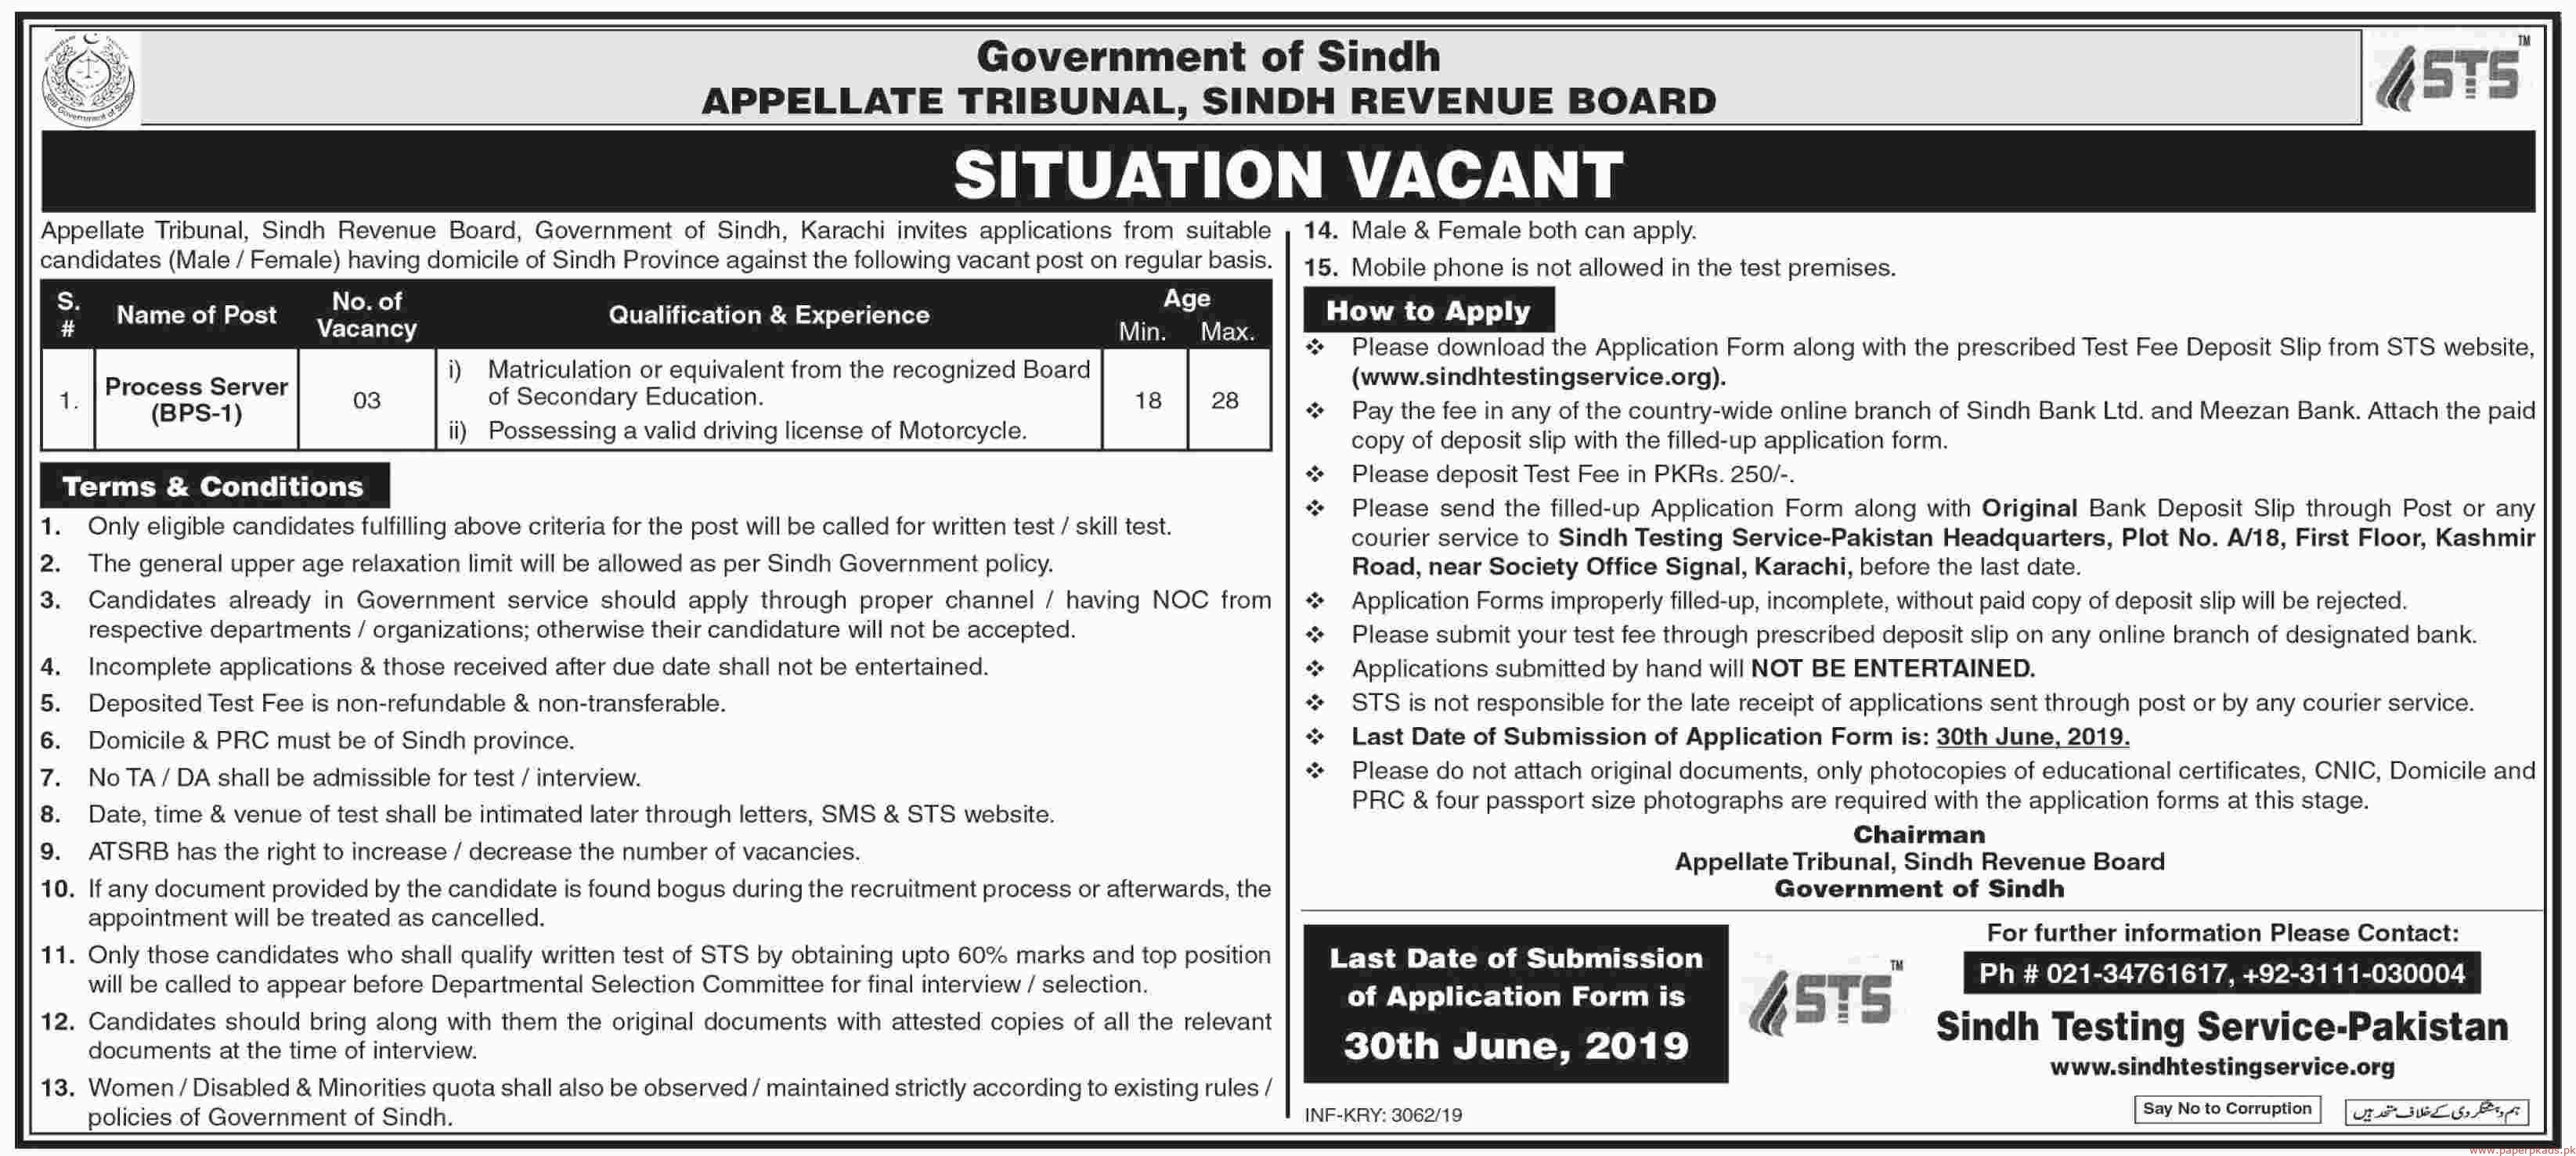 Government of Sindh - Appellate Tribunal Sindh Revenue Board Jobs 2019 Latest